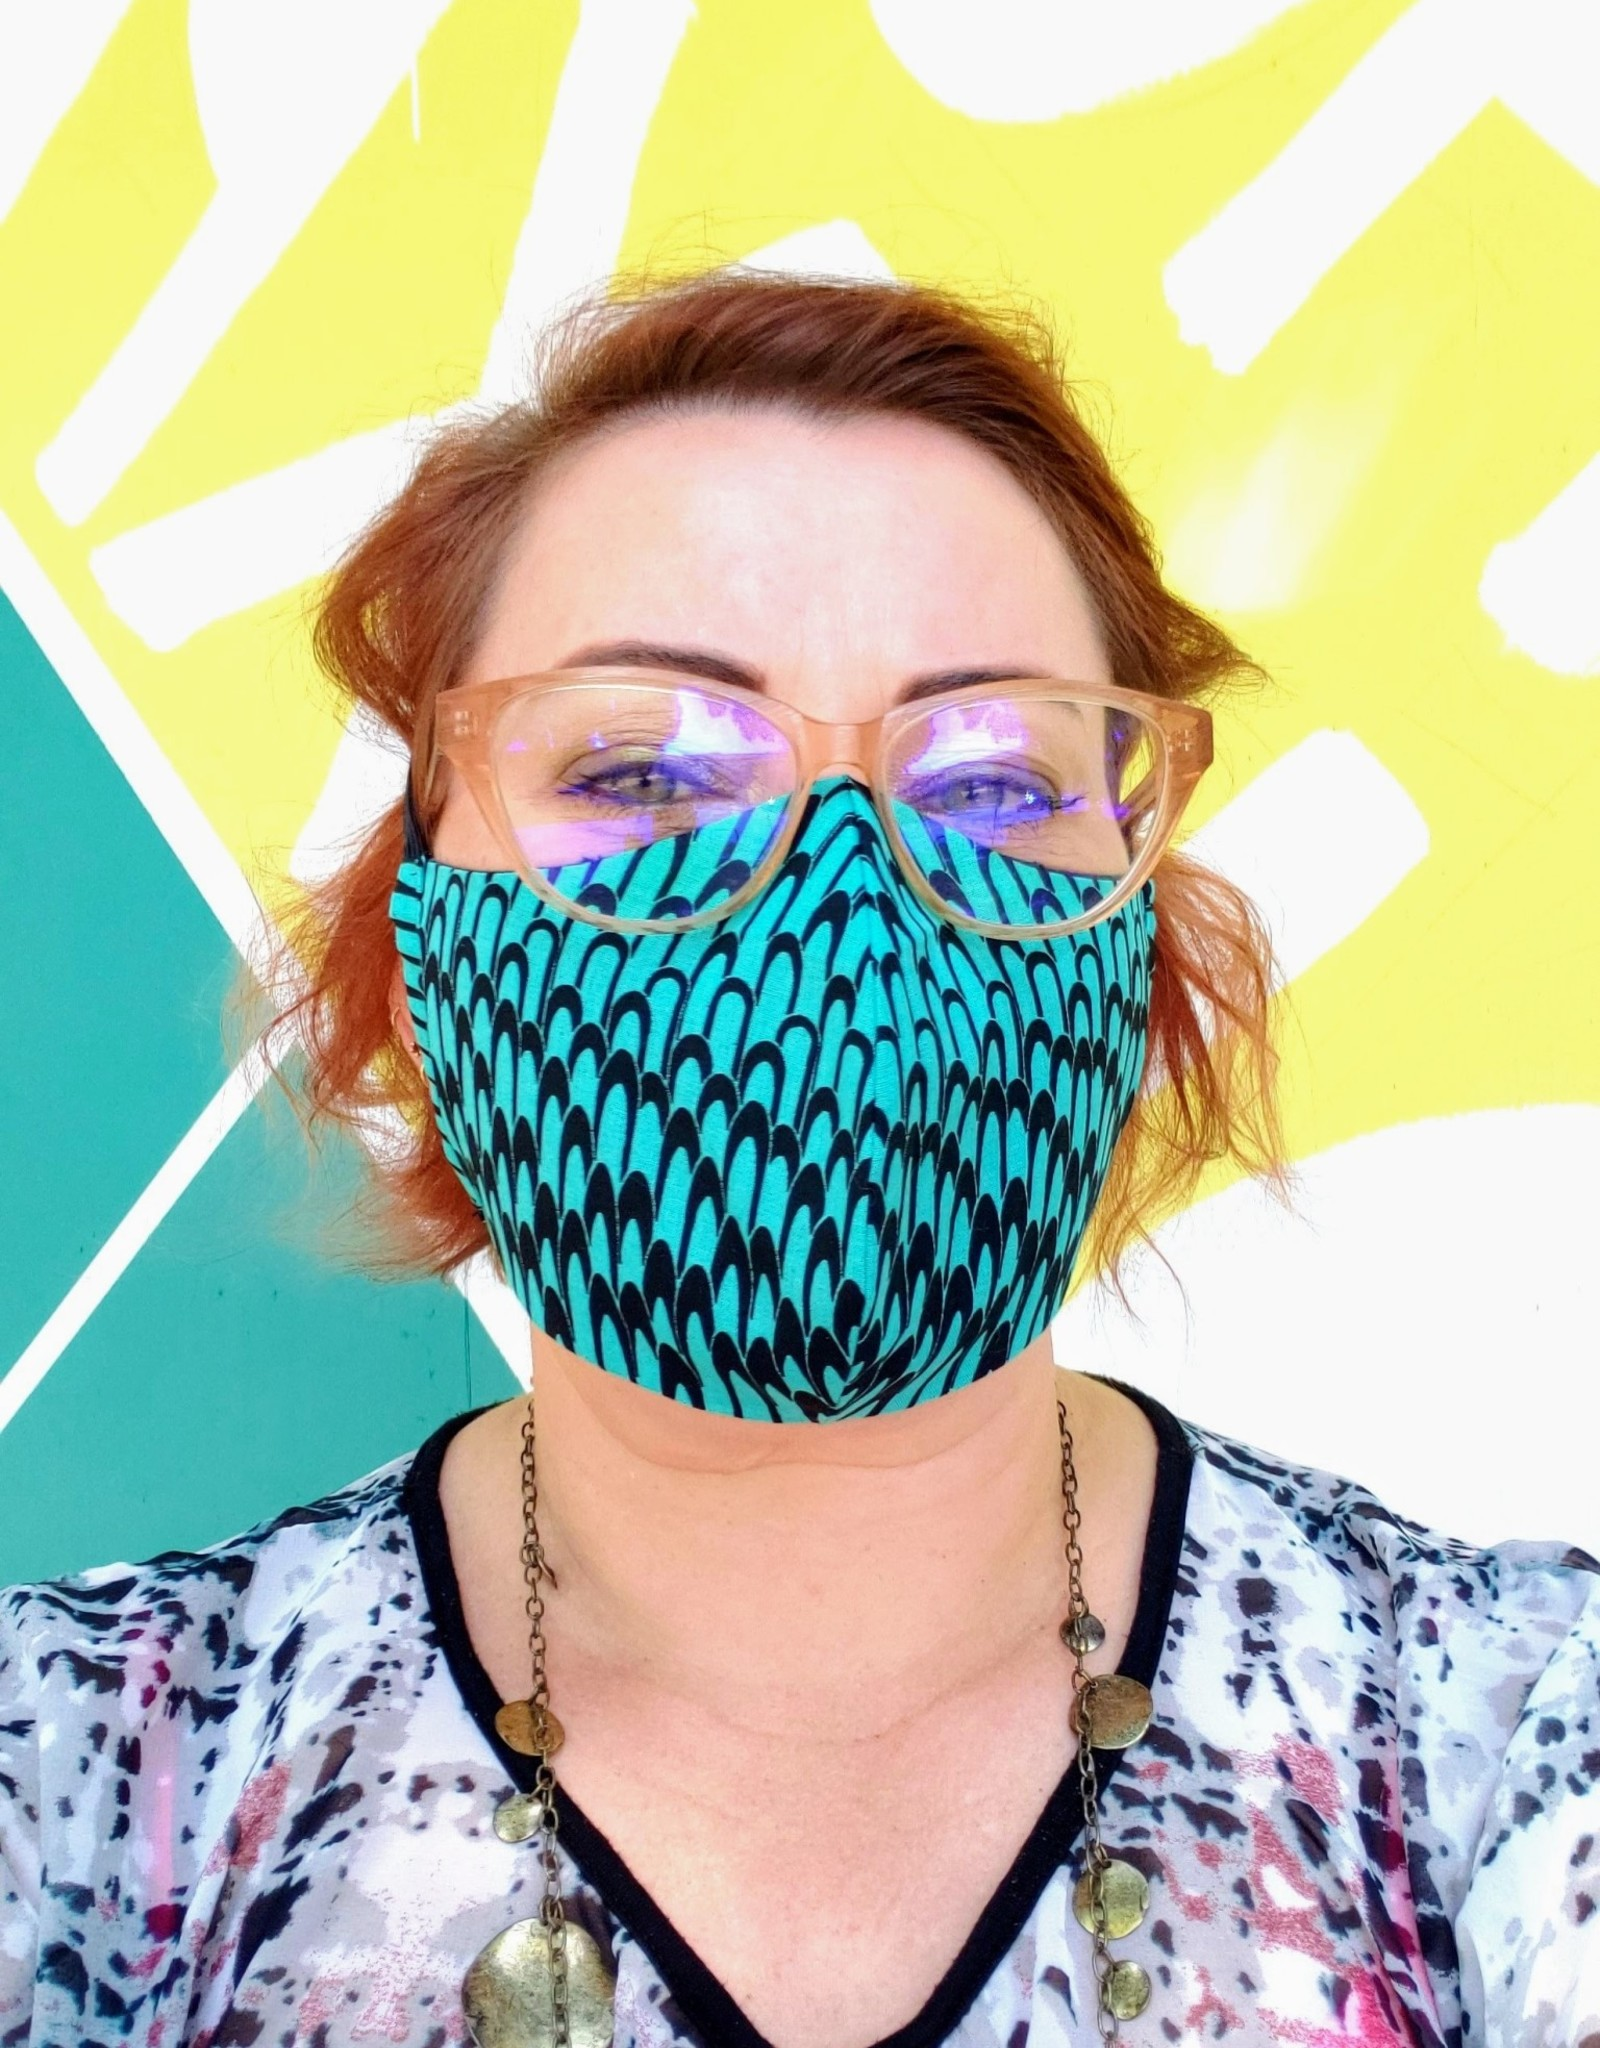 Redux Mermaid Mask - Handmade Fabric Face Mask